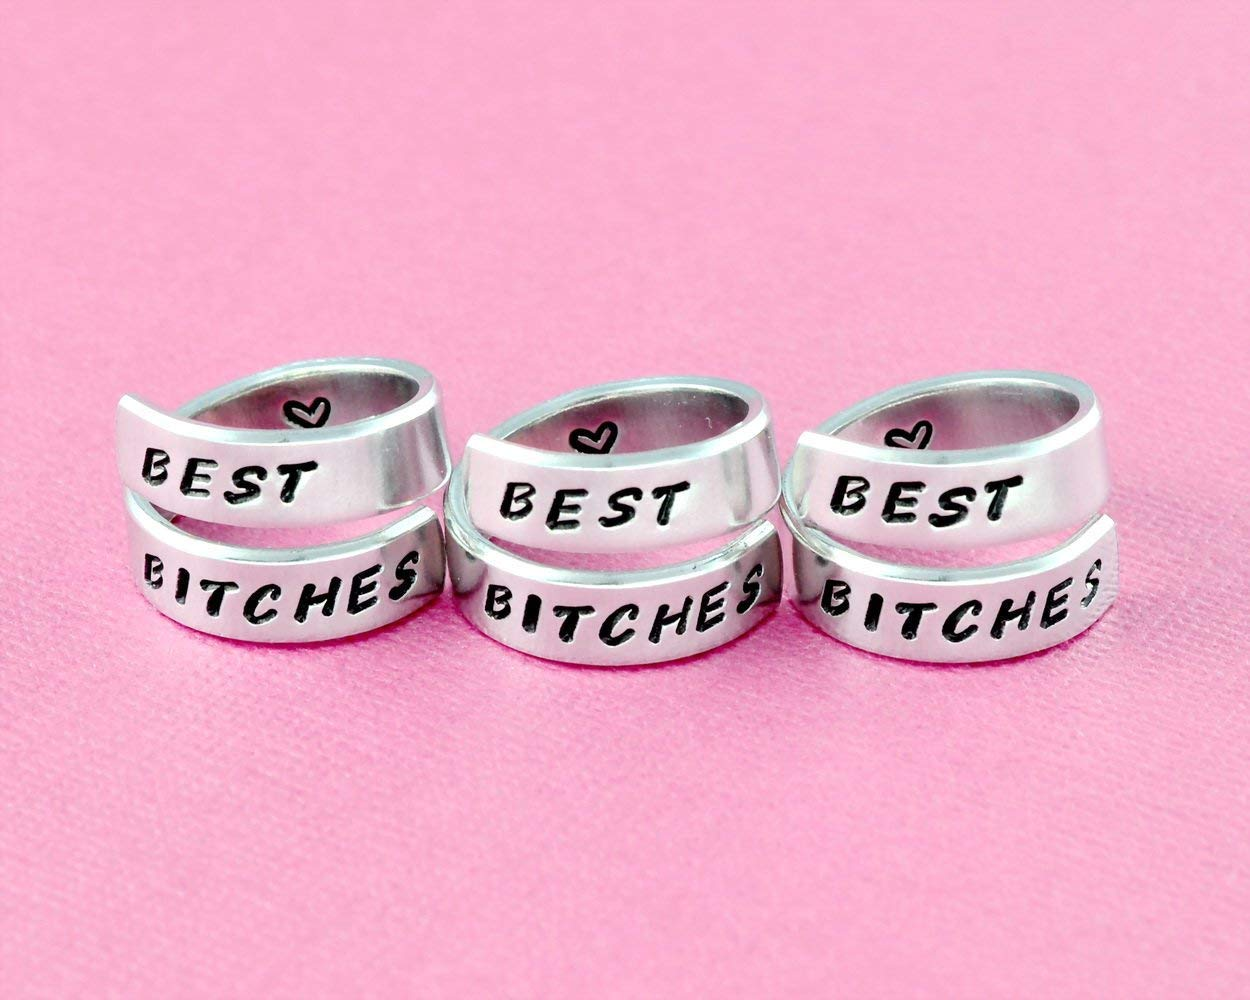 967e6424c9236 BEST BITCHES - Hand Stamped Aluminum Spiral Wrap Rings Set of 3 ...